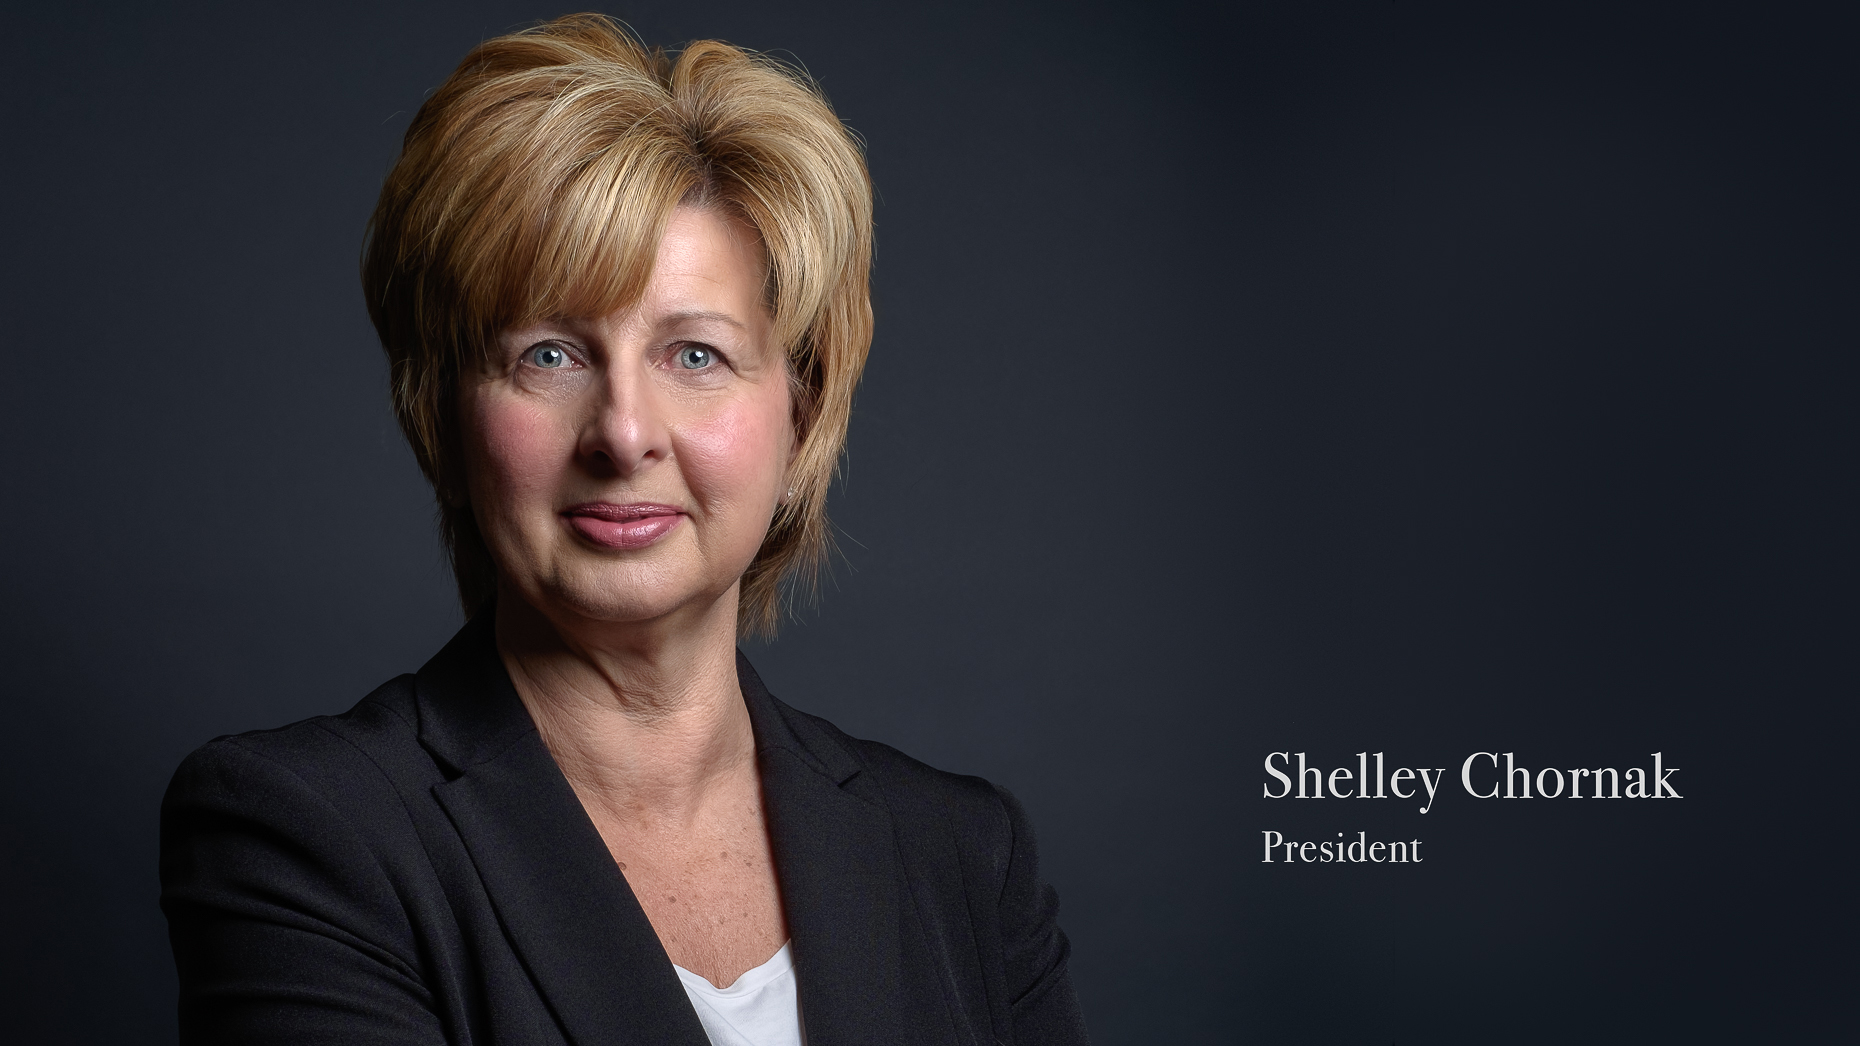 Business headshot of a female insurance professional with their title on the image.